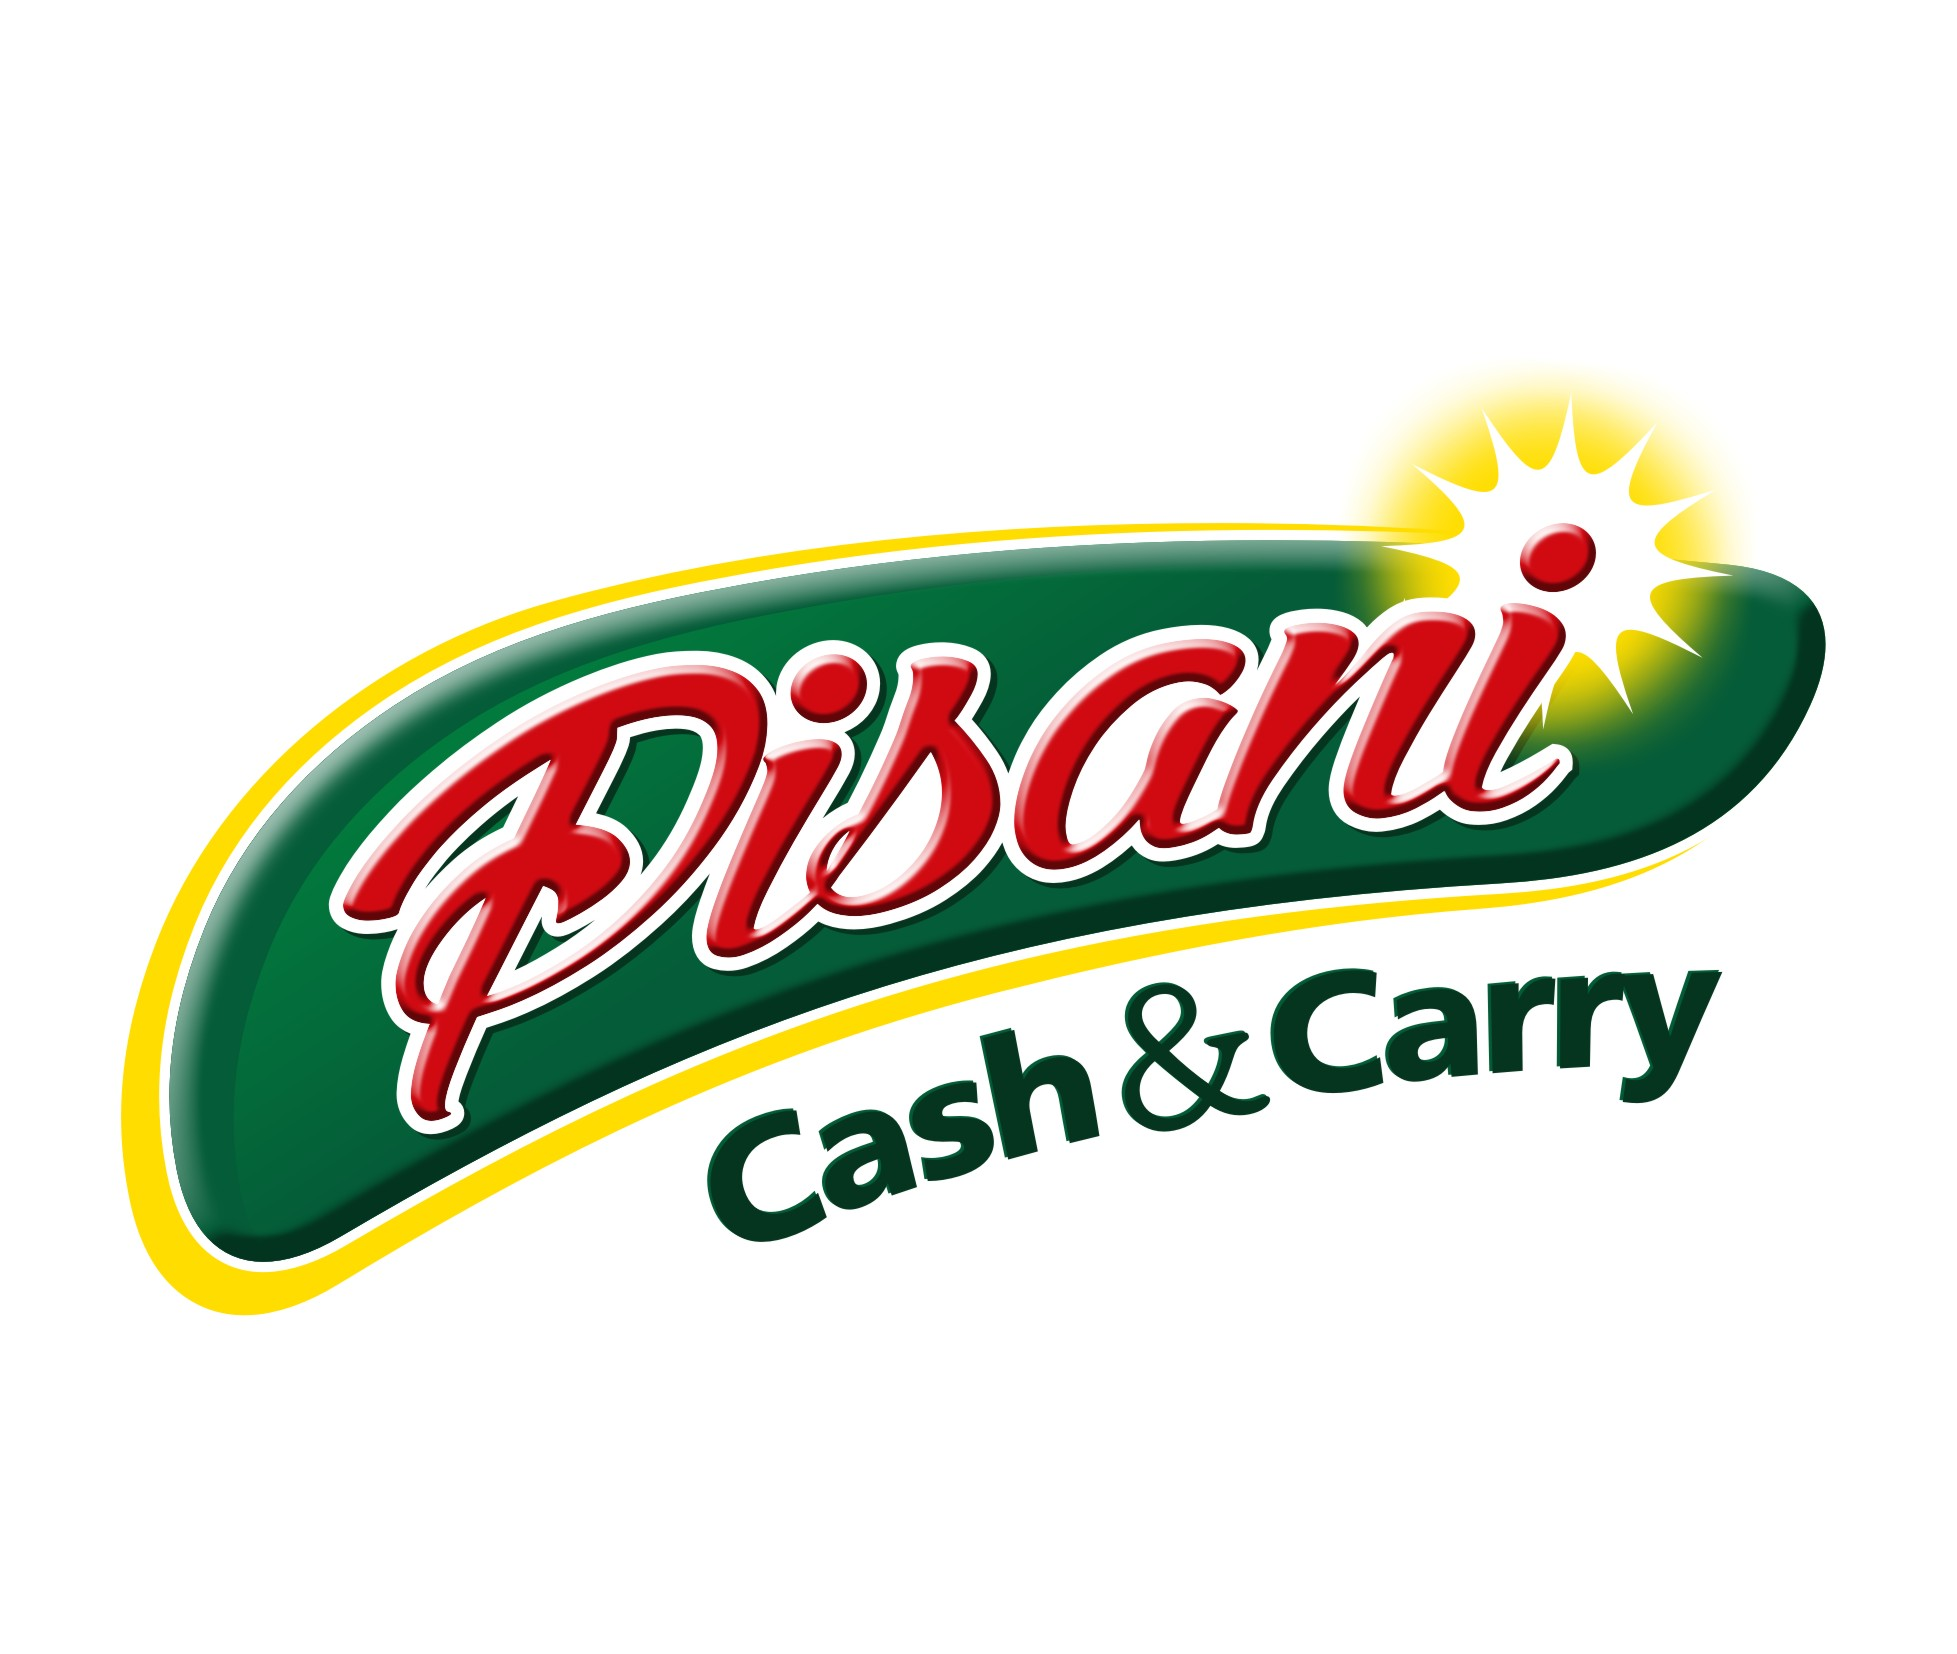 Pisani Cash & carry logo